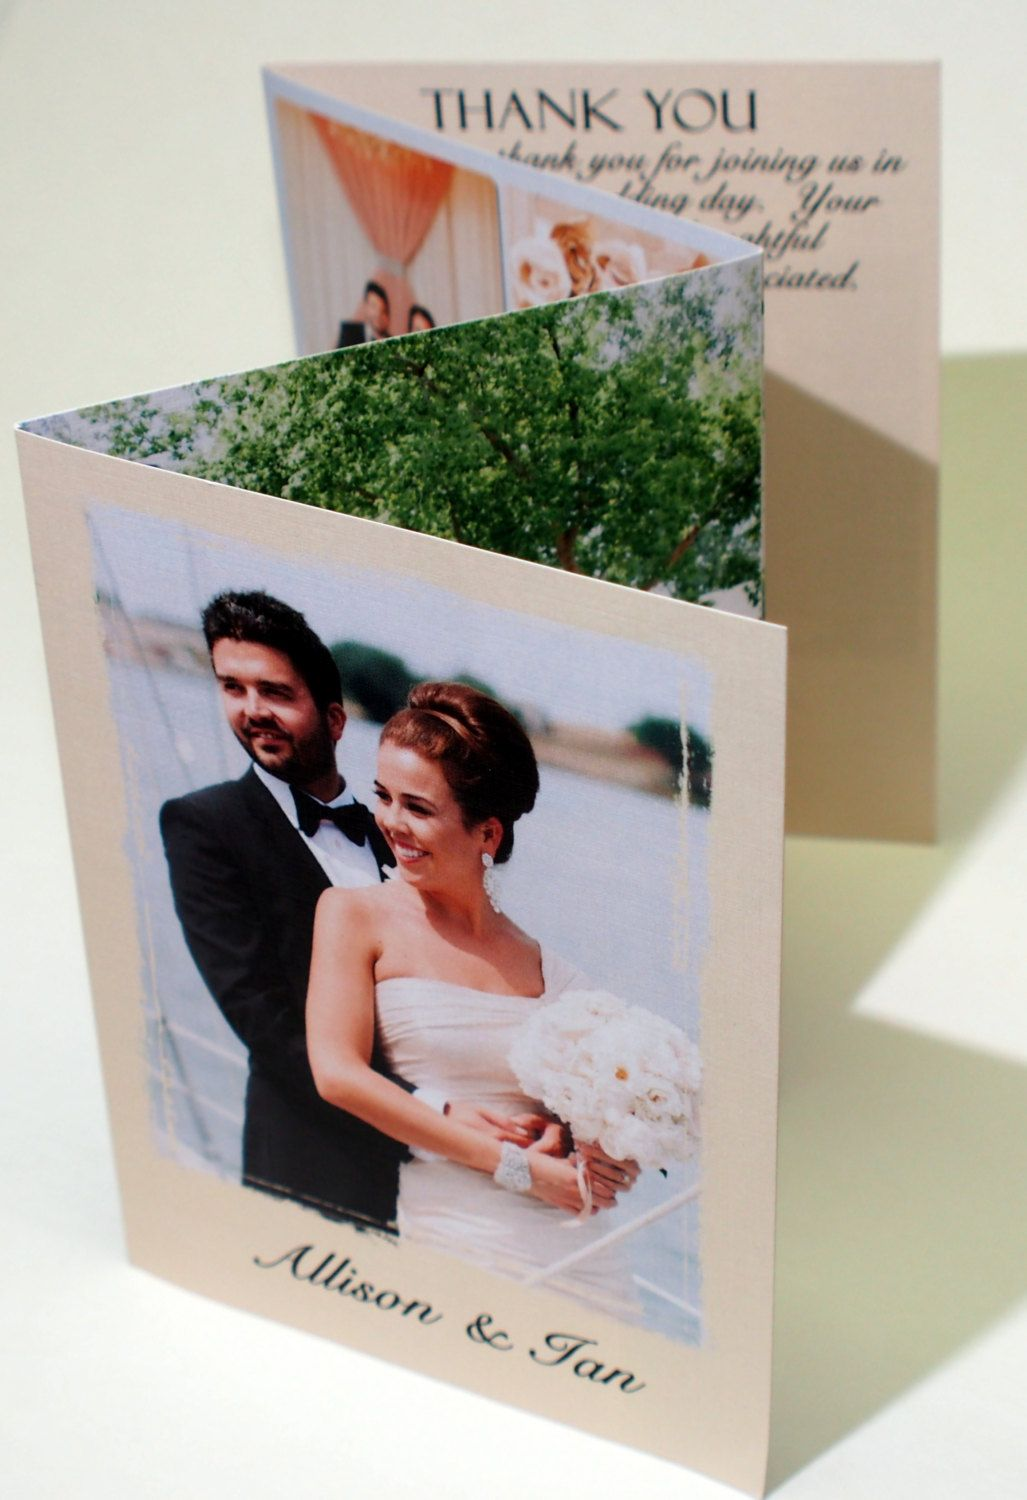 Accordion Fold Wedding Thank You Card 109 3 50 Via Etsy